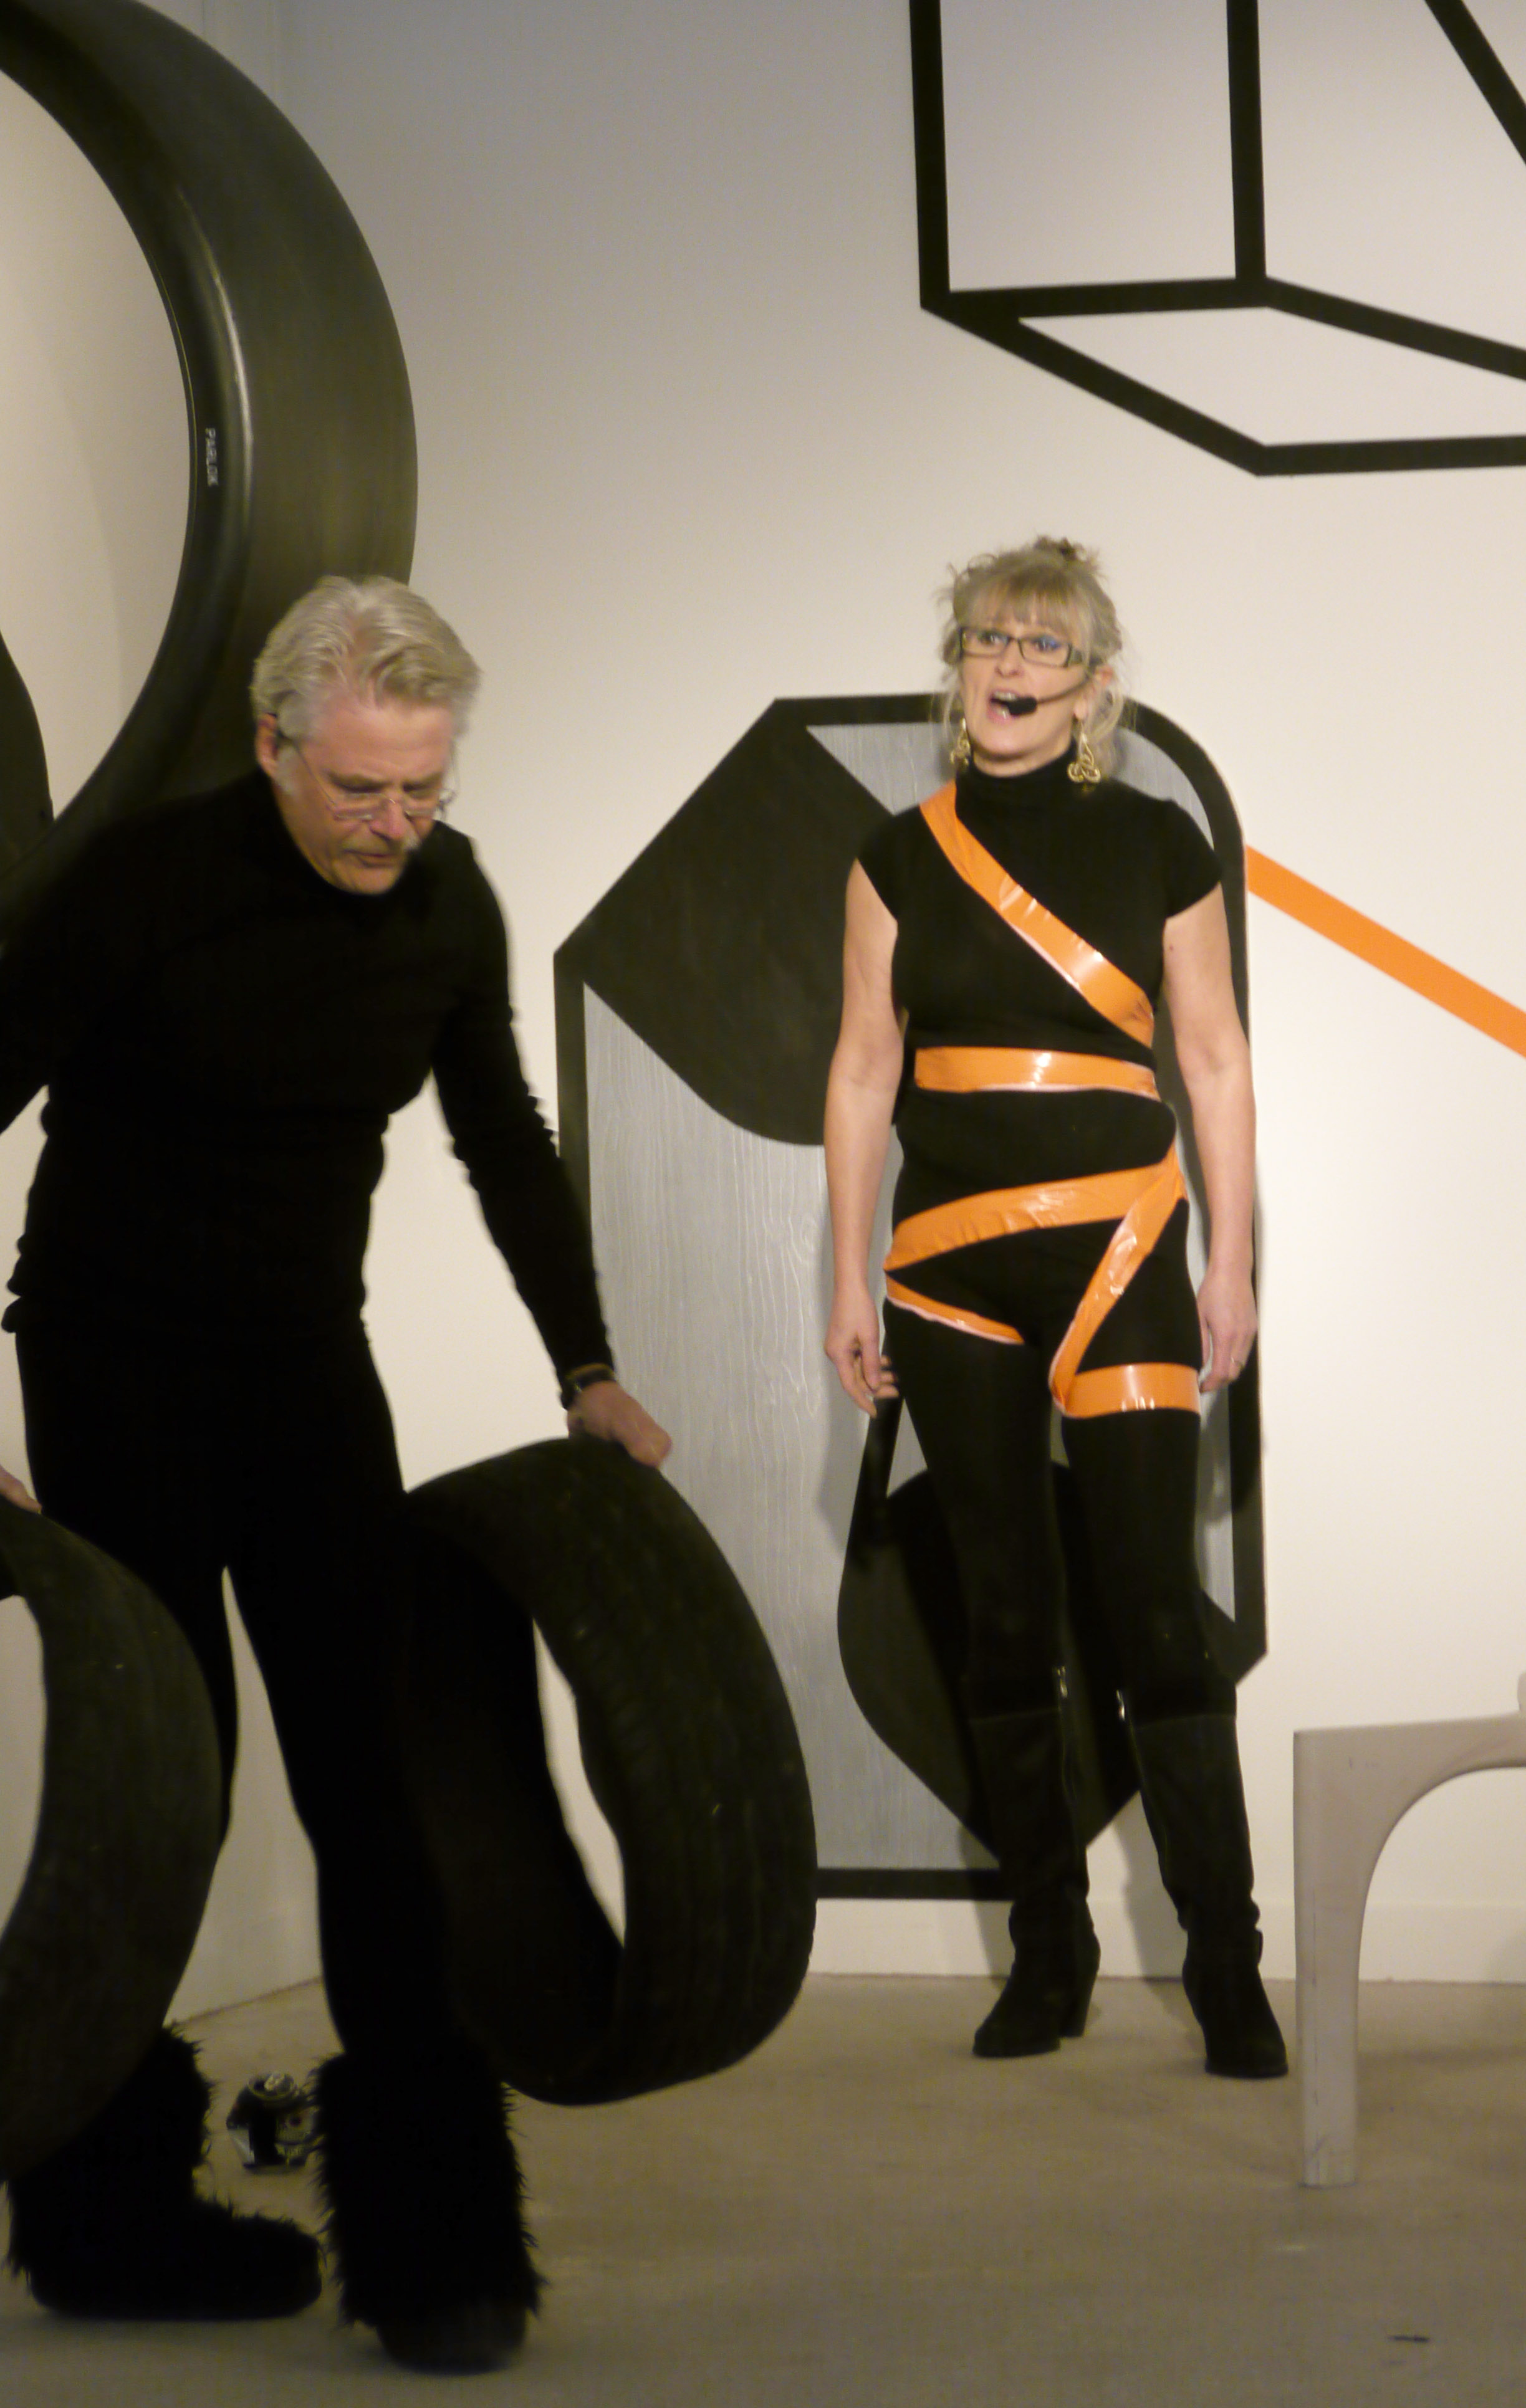 Lill Marit Bugge och Örjan Wallert performance på UnTied Notions, 2012